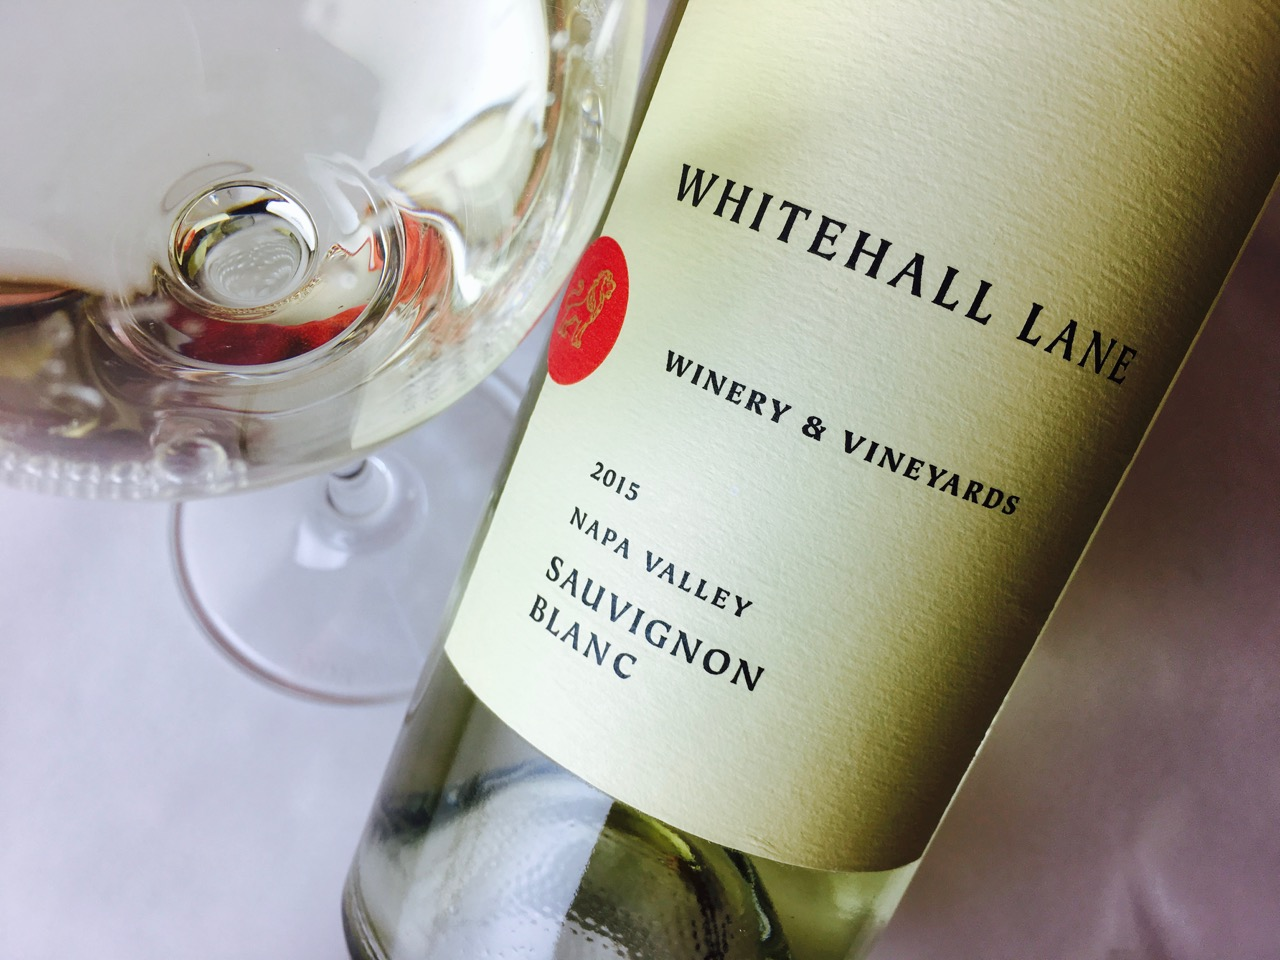 2015 Whitehall Lane Sauvignon Blanc Napa Valley